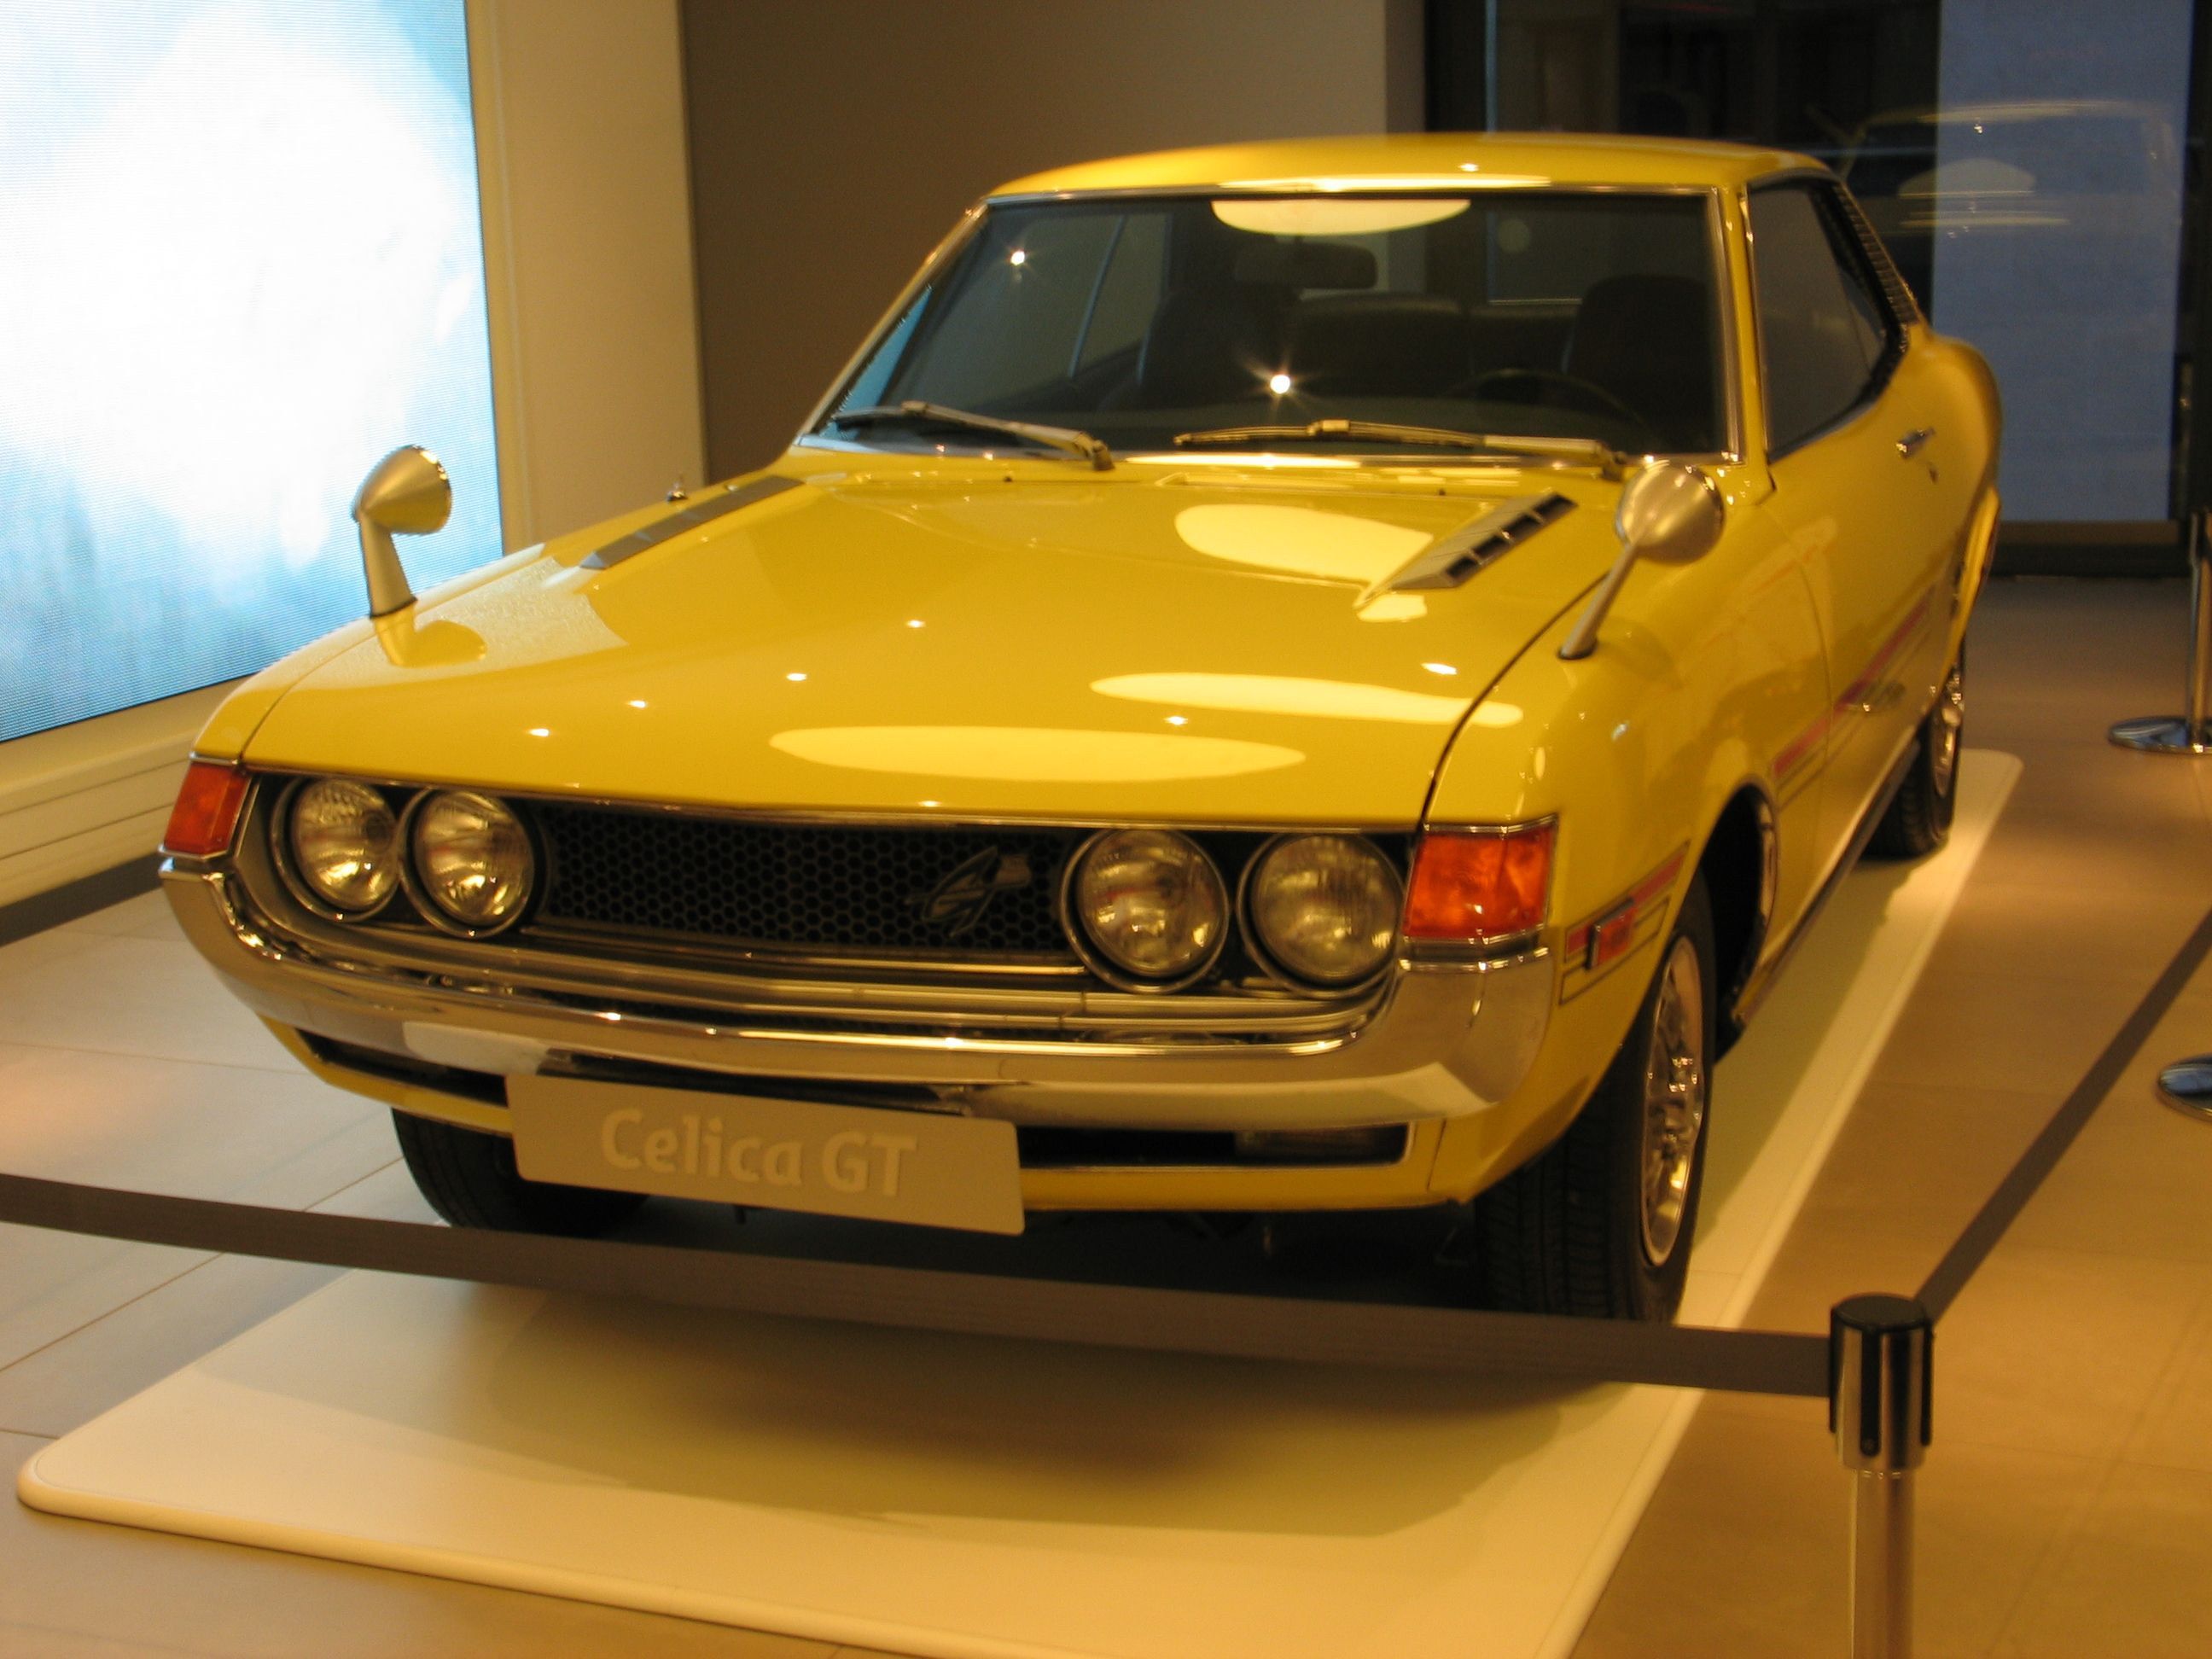 toyota celica gt in paris 25 4 09 CARS Pinterest